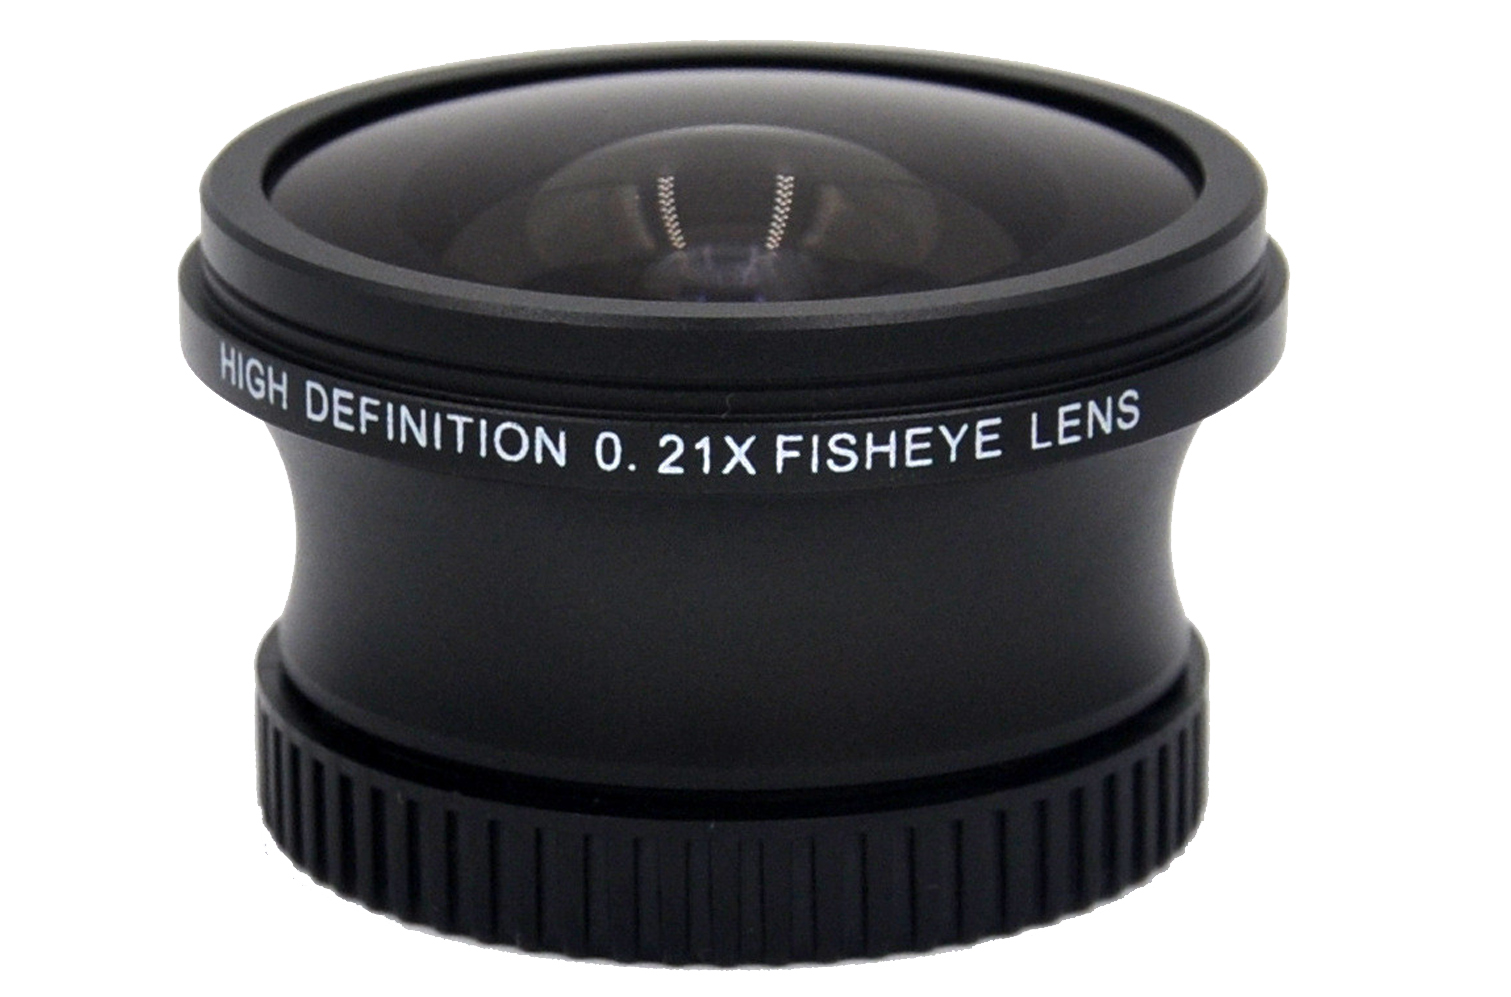 Canon PowerShot SX740 HS High Definition Multi-Coated /& Threaded 3 Piece Lens Filter Kit Includes Filter//Lens Adapter